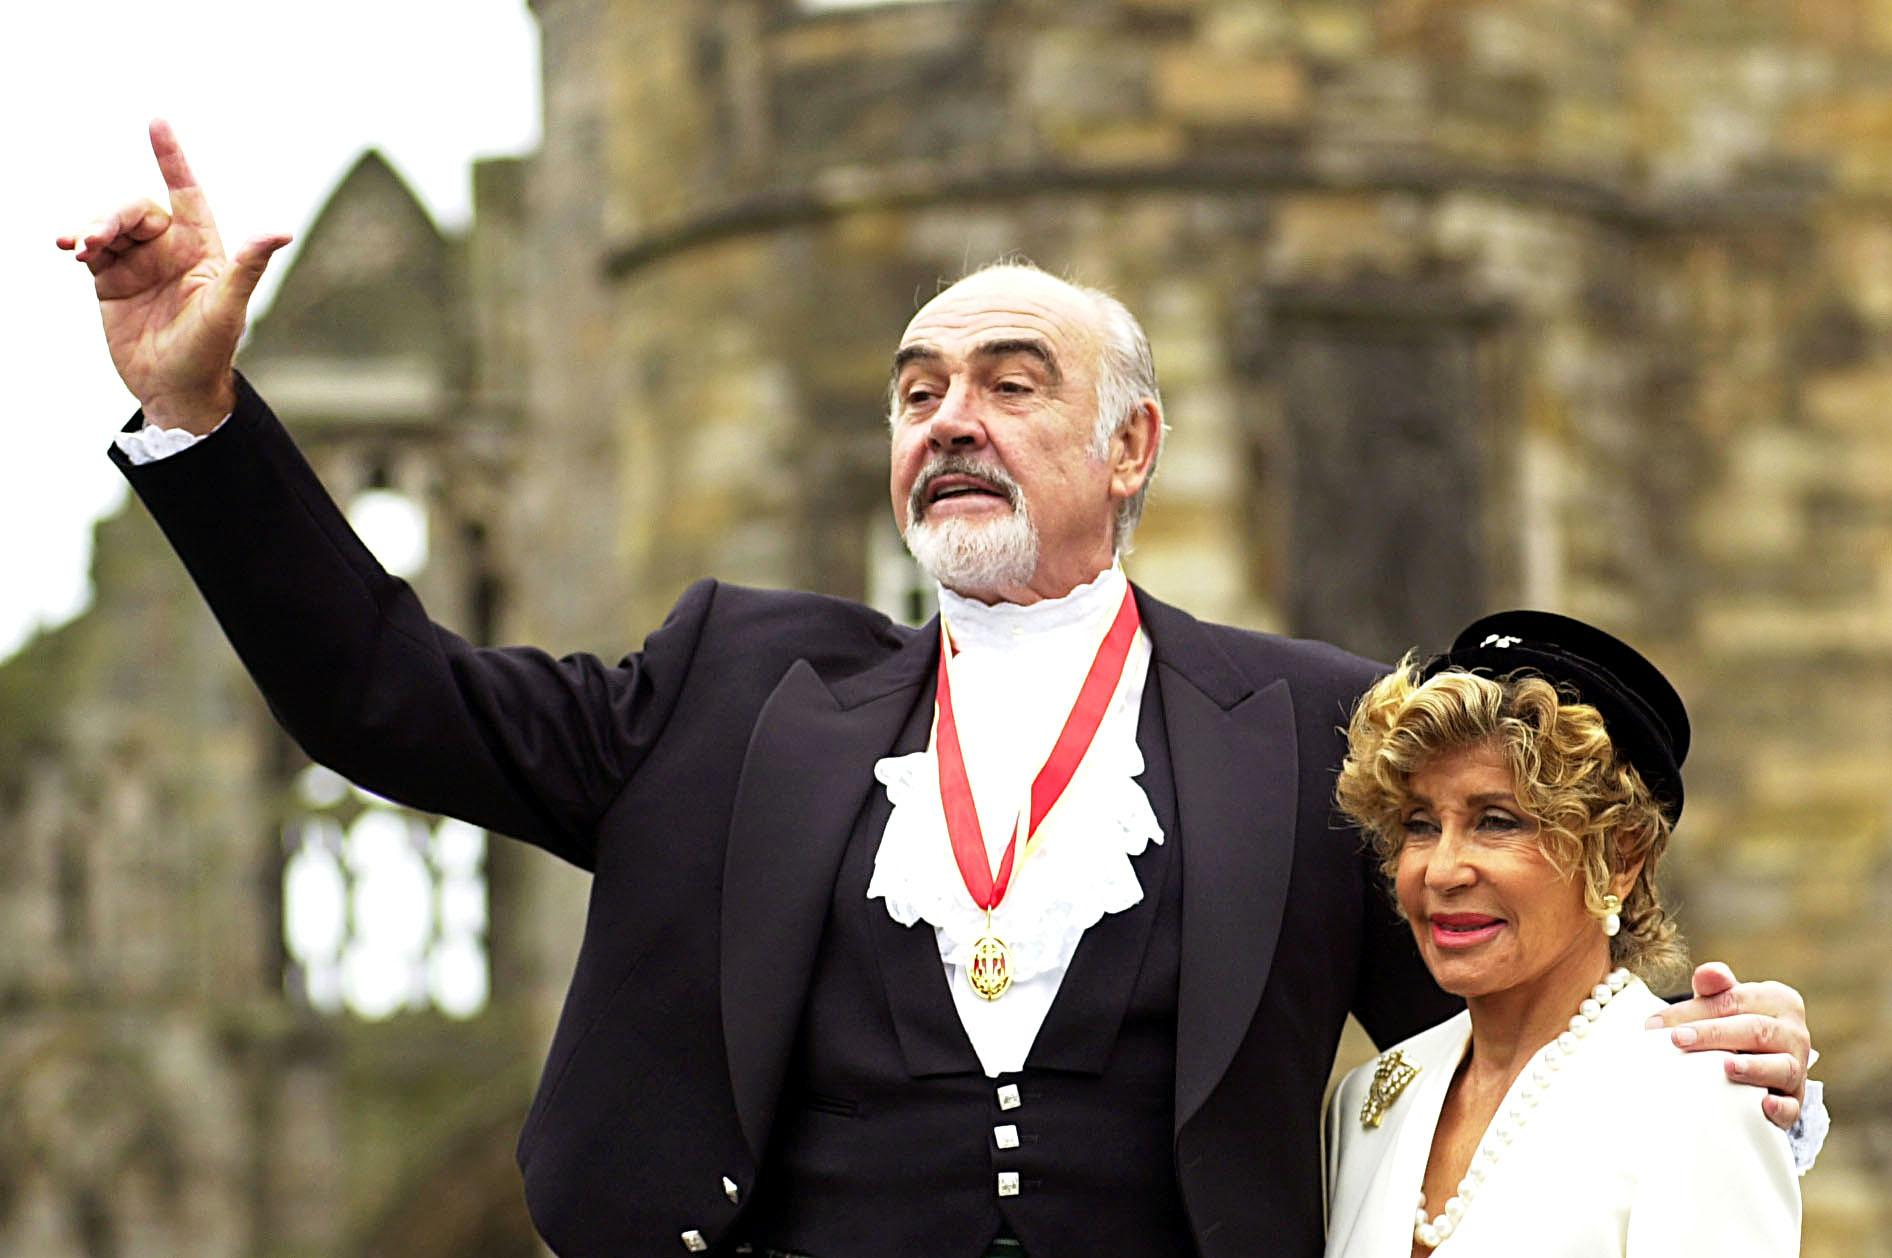 Sir Sean Connery's widow Micheline shares James Bond actor's final moments  as he 'slipped away without a fuss'   The Scotsman